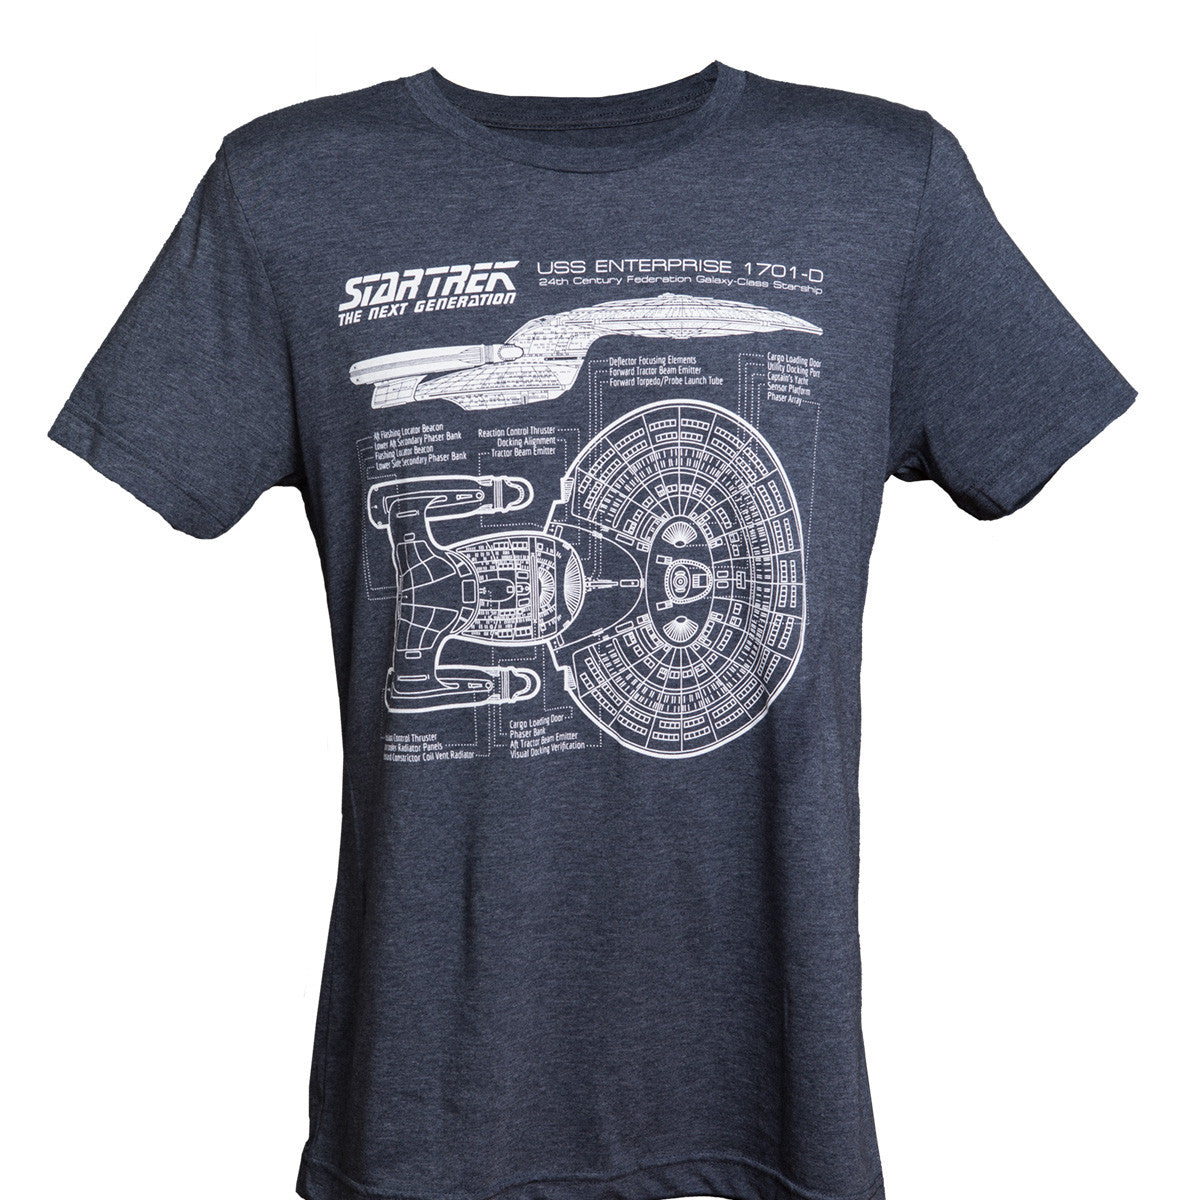 TNG 30th Anniversary T-Shirt (Navy Blue)